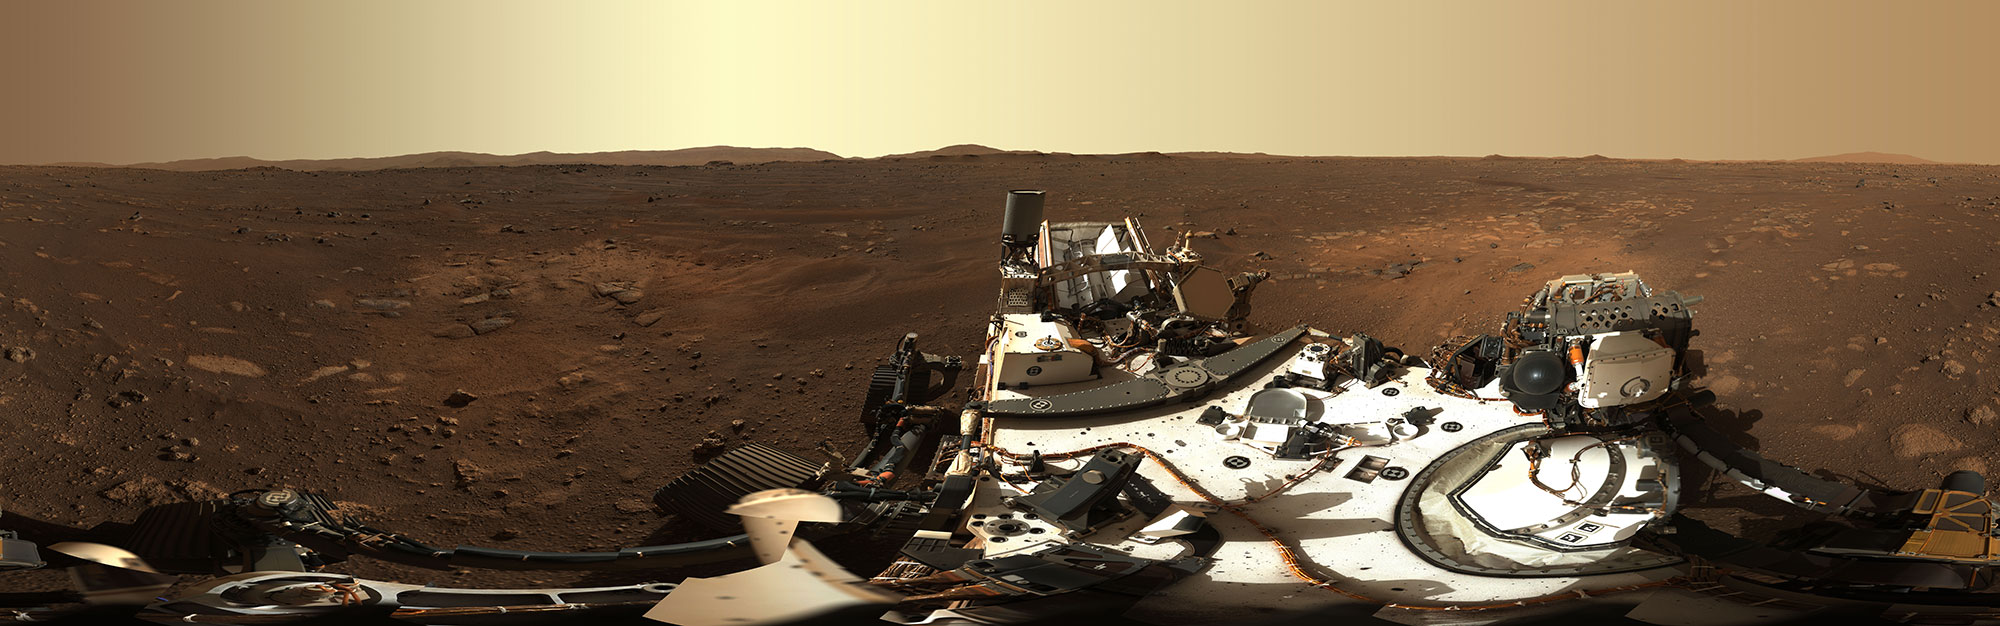 A 360 degree image of the rover, a silver robotic car-like craft, on Mars, a flat red dirt landscape.